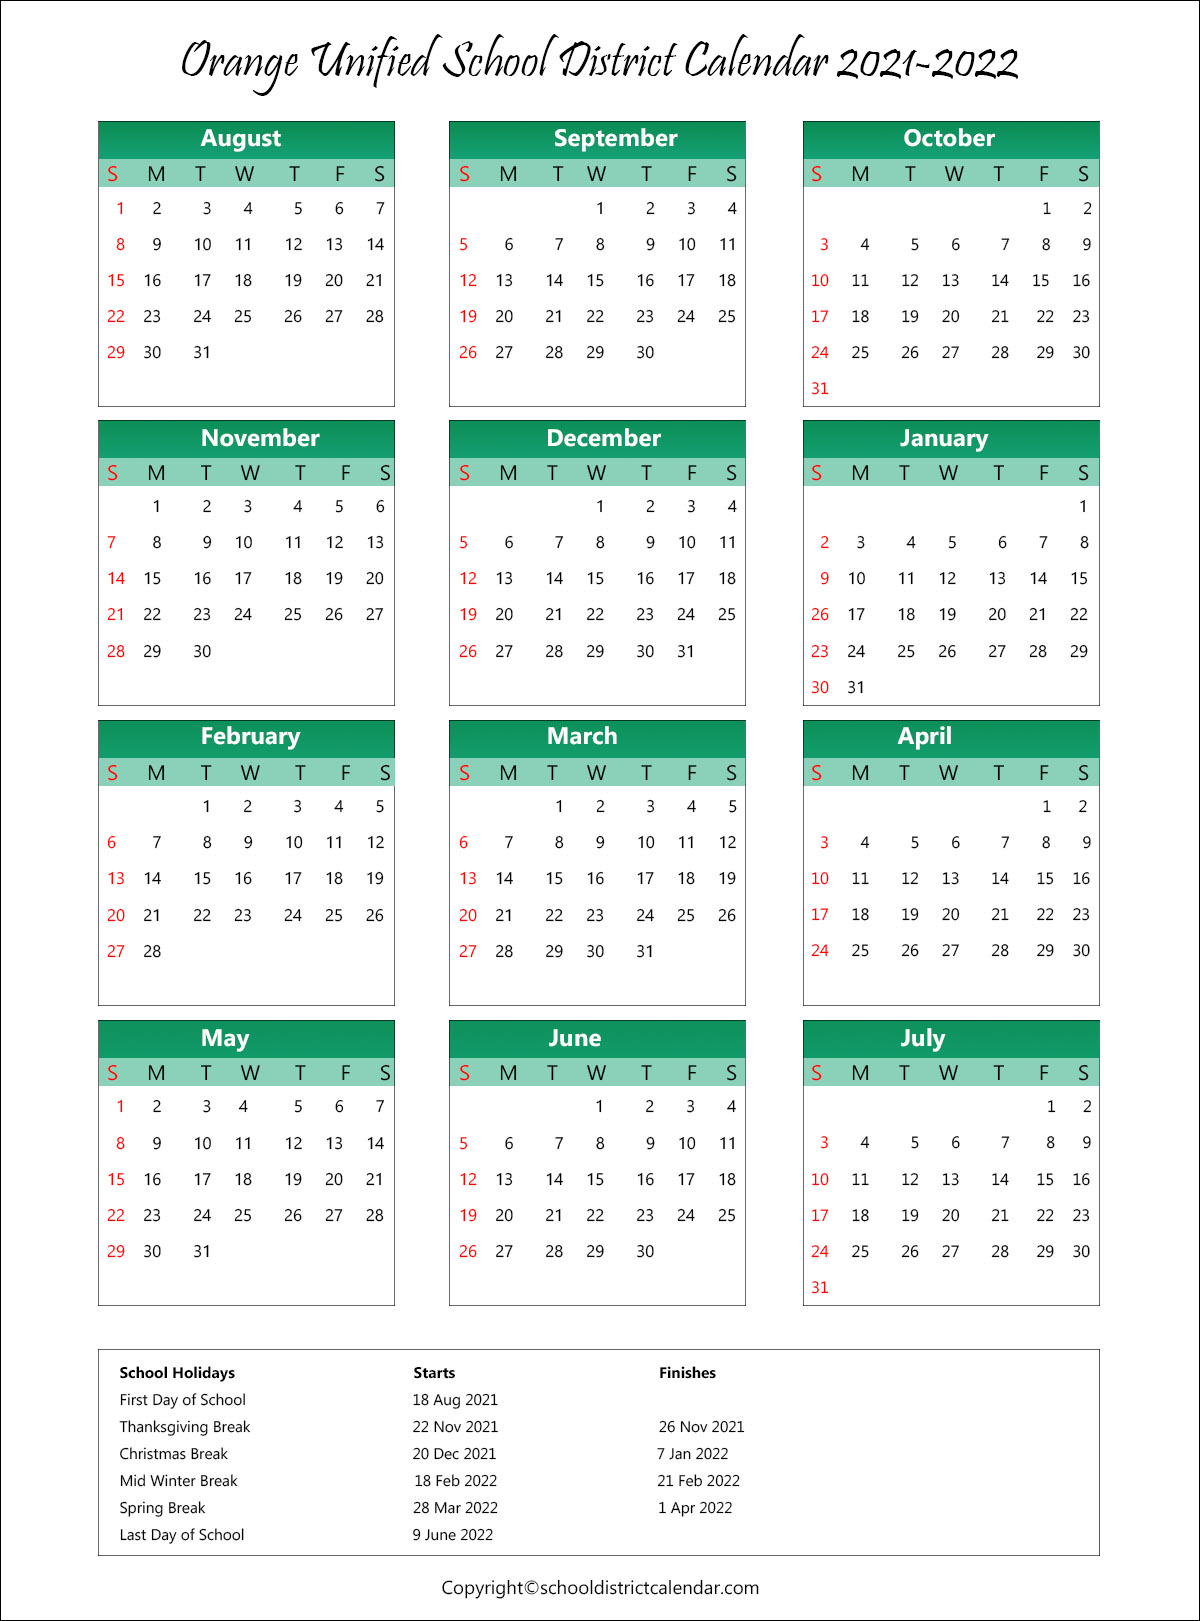 Orange Unified School District, California Calendar Holidays 2021